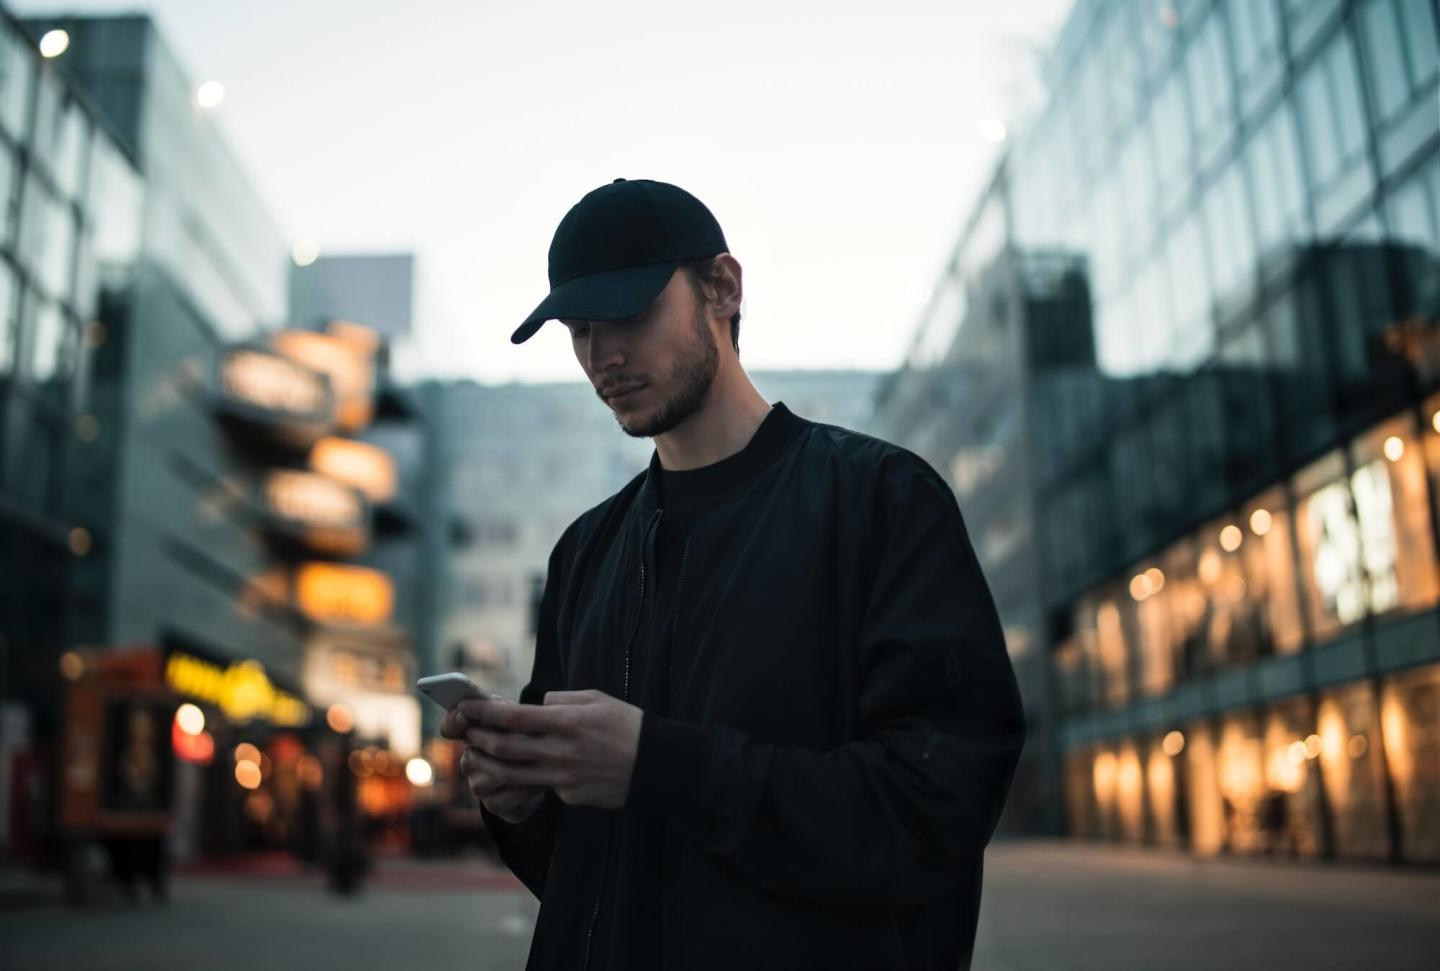 A man in a cap looking at his phone with blurred buildings behind him